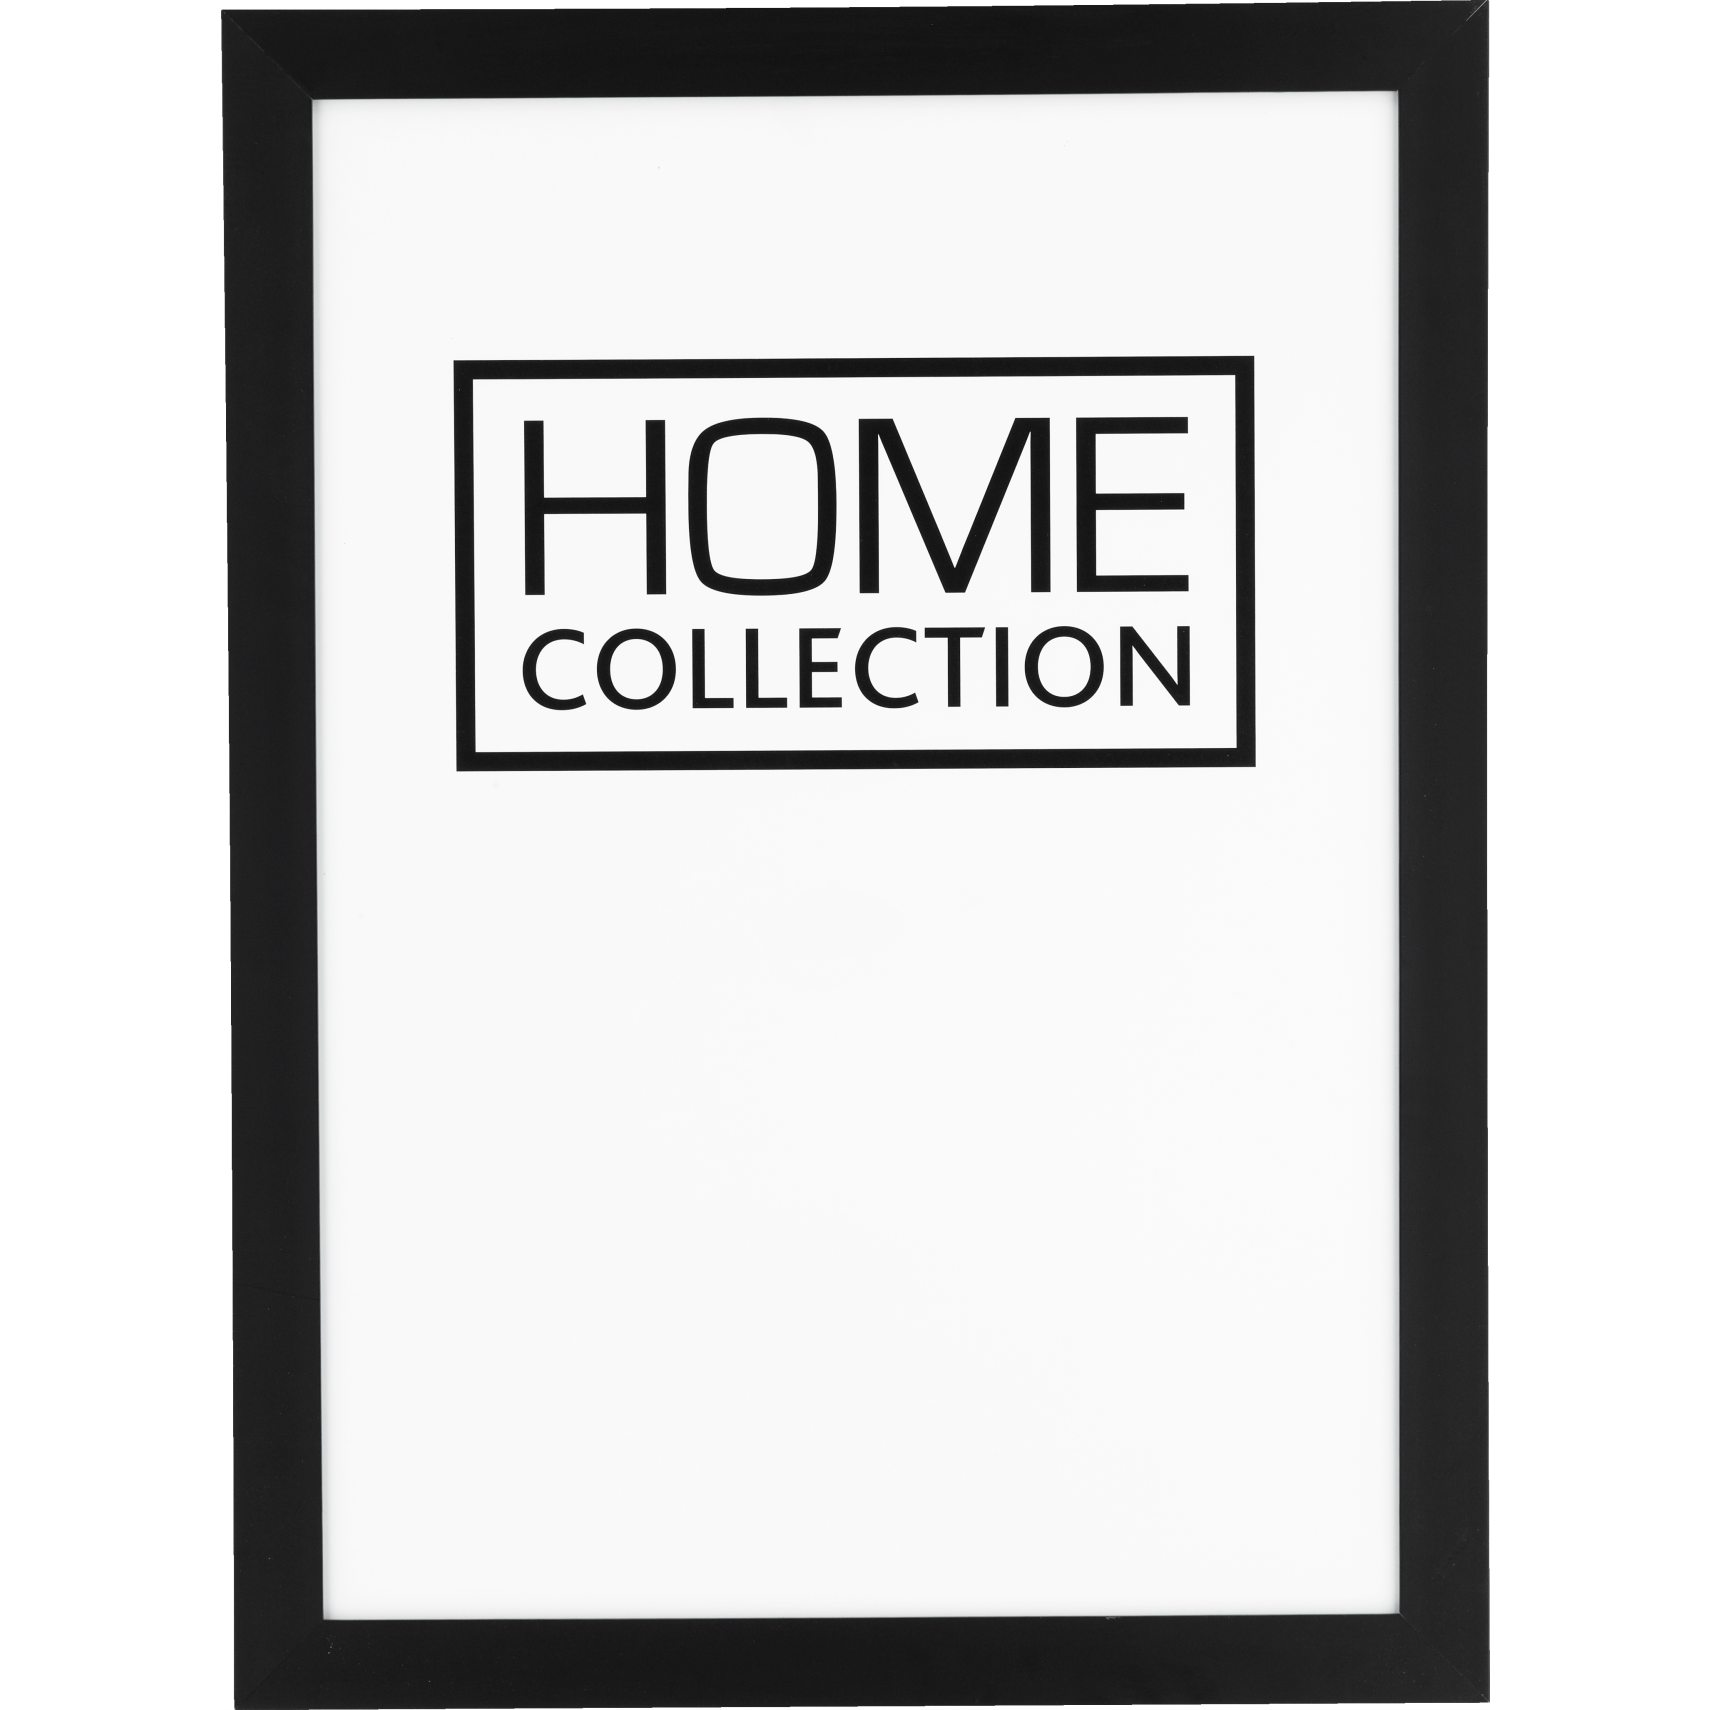 HOME COLLECTION Ramme 30 x 40 x 2 cm - Sort træramme